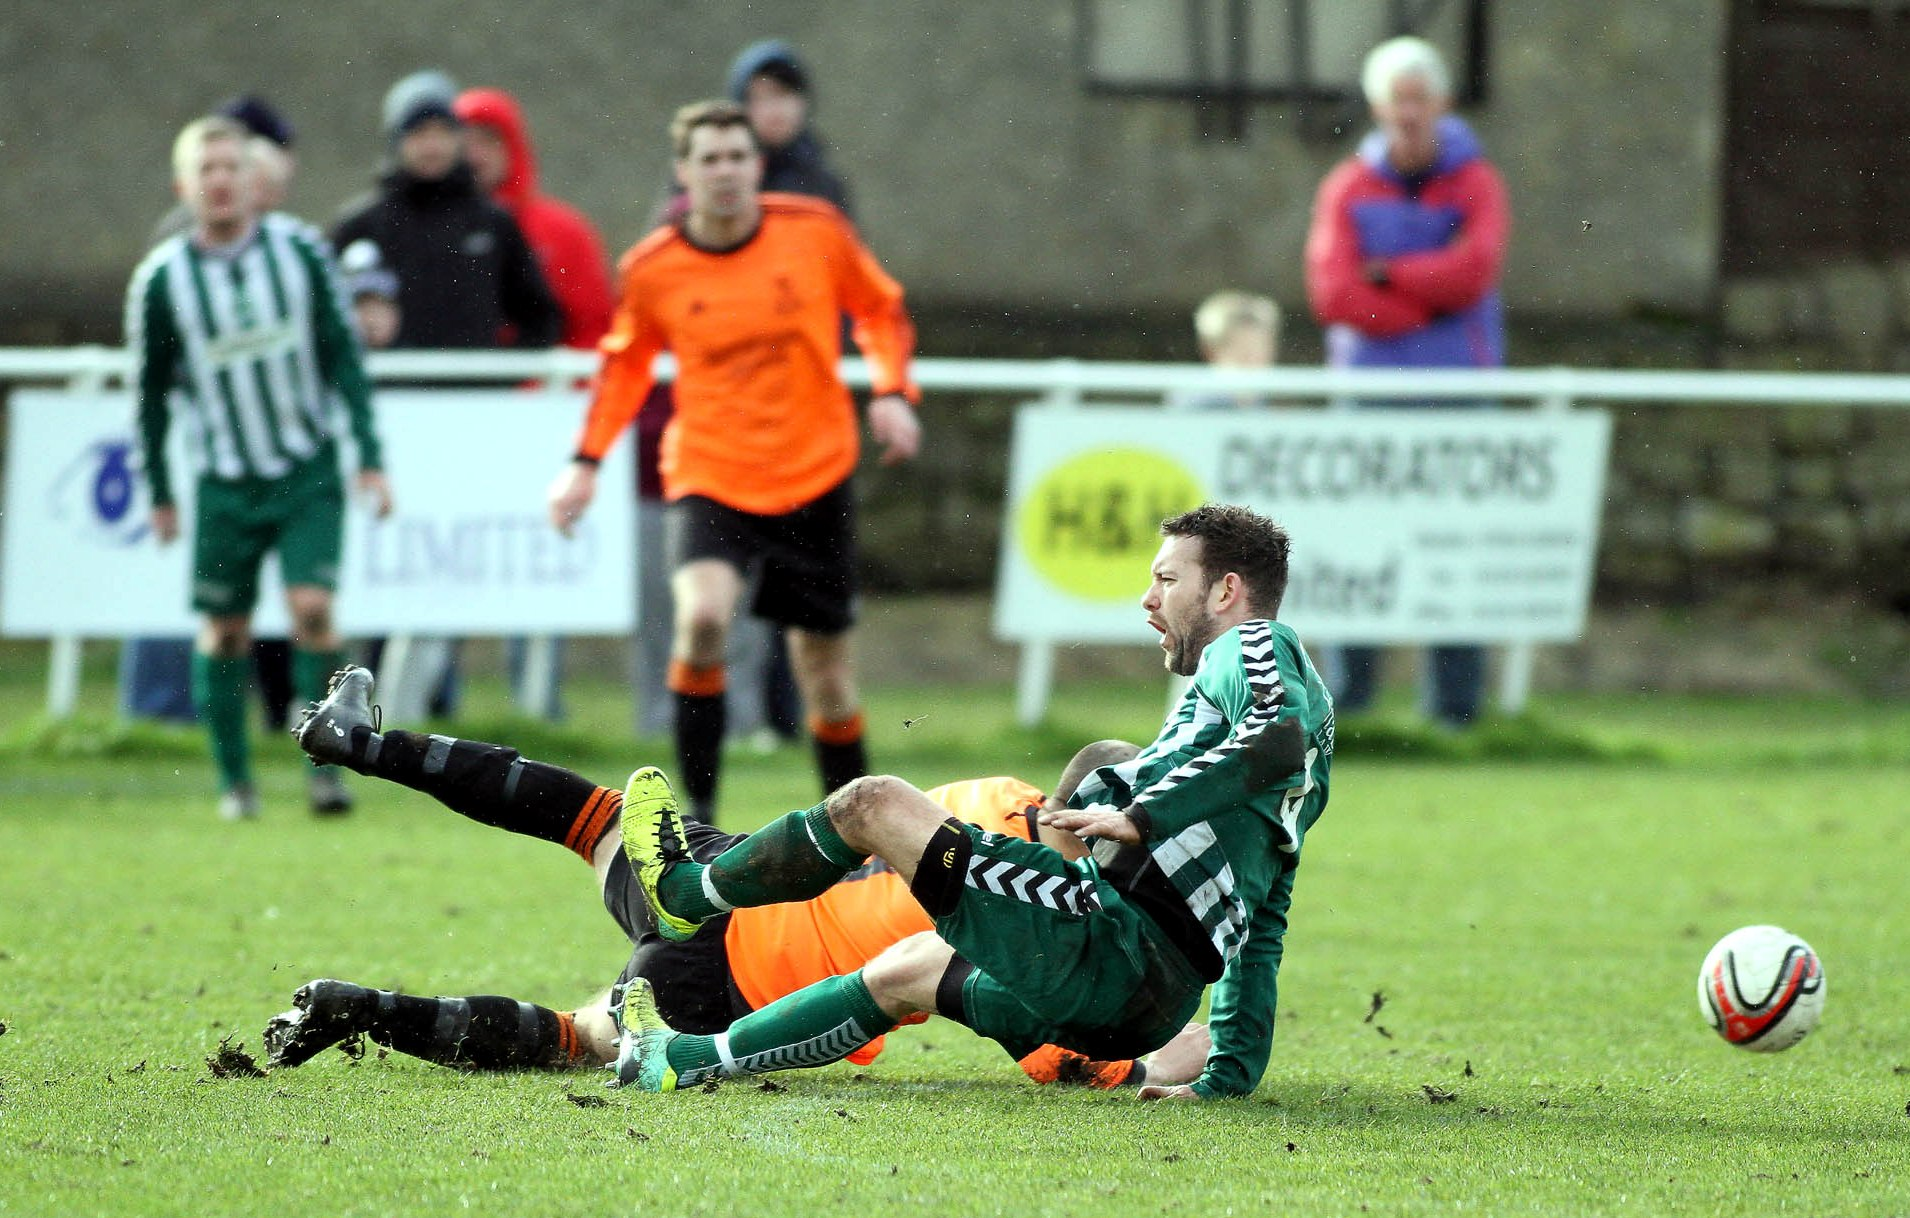 Steeton's Jamie Longley, pictured in the cup clash with Oxenhope, faces a two-month lay-off with a medial ligament injury